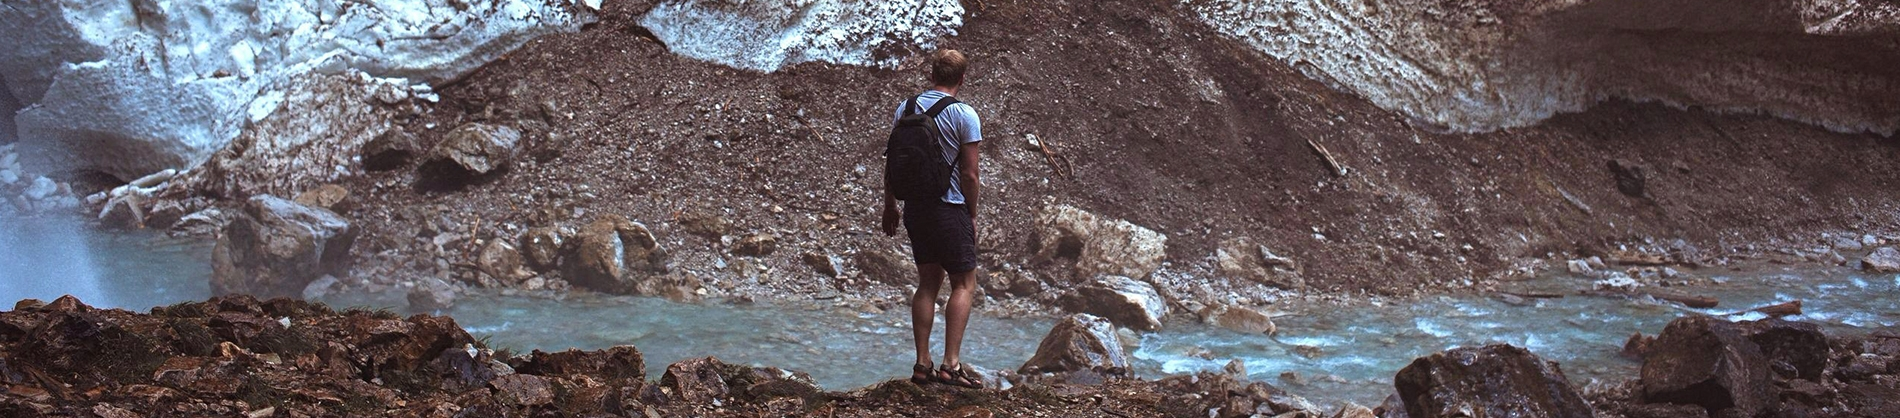 A guy stood on rocks looking over a river onto mountains